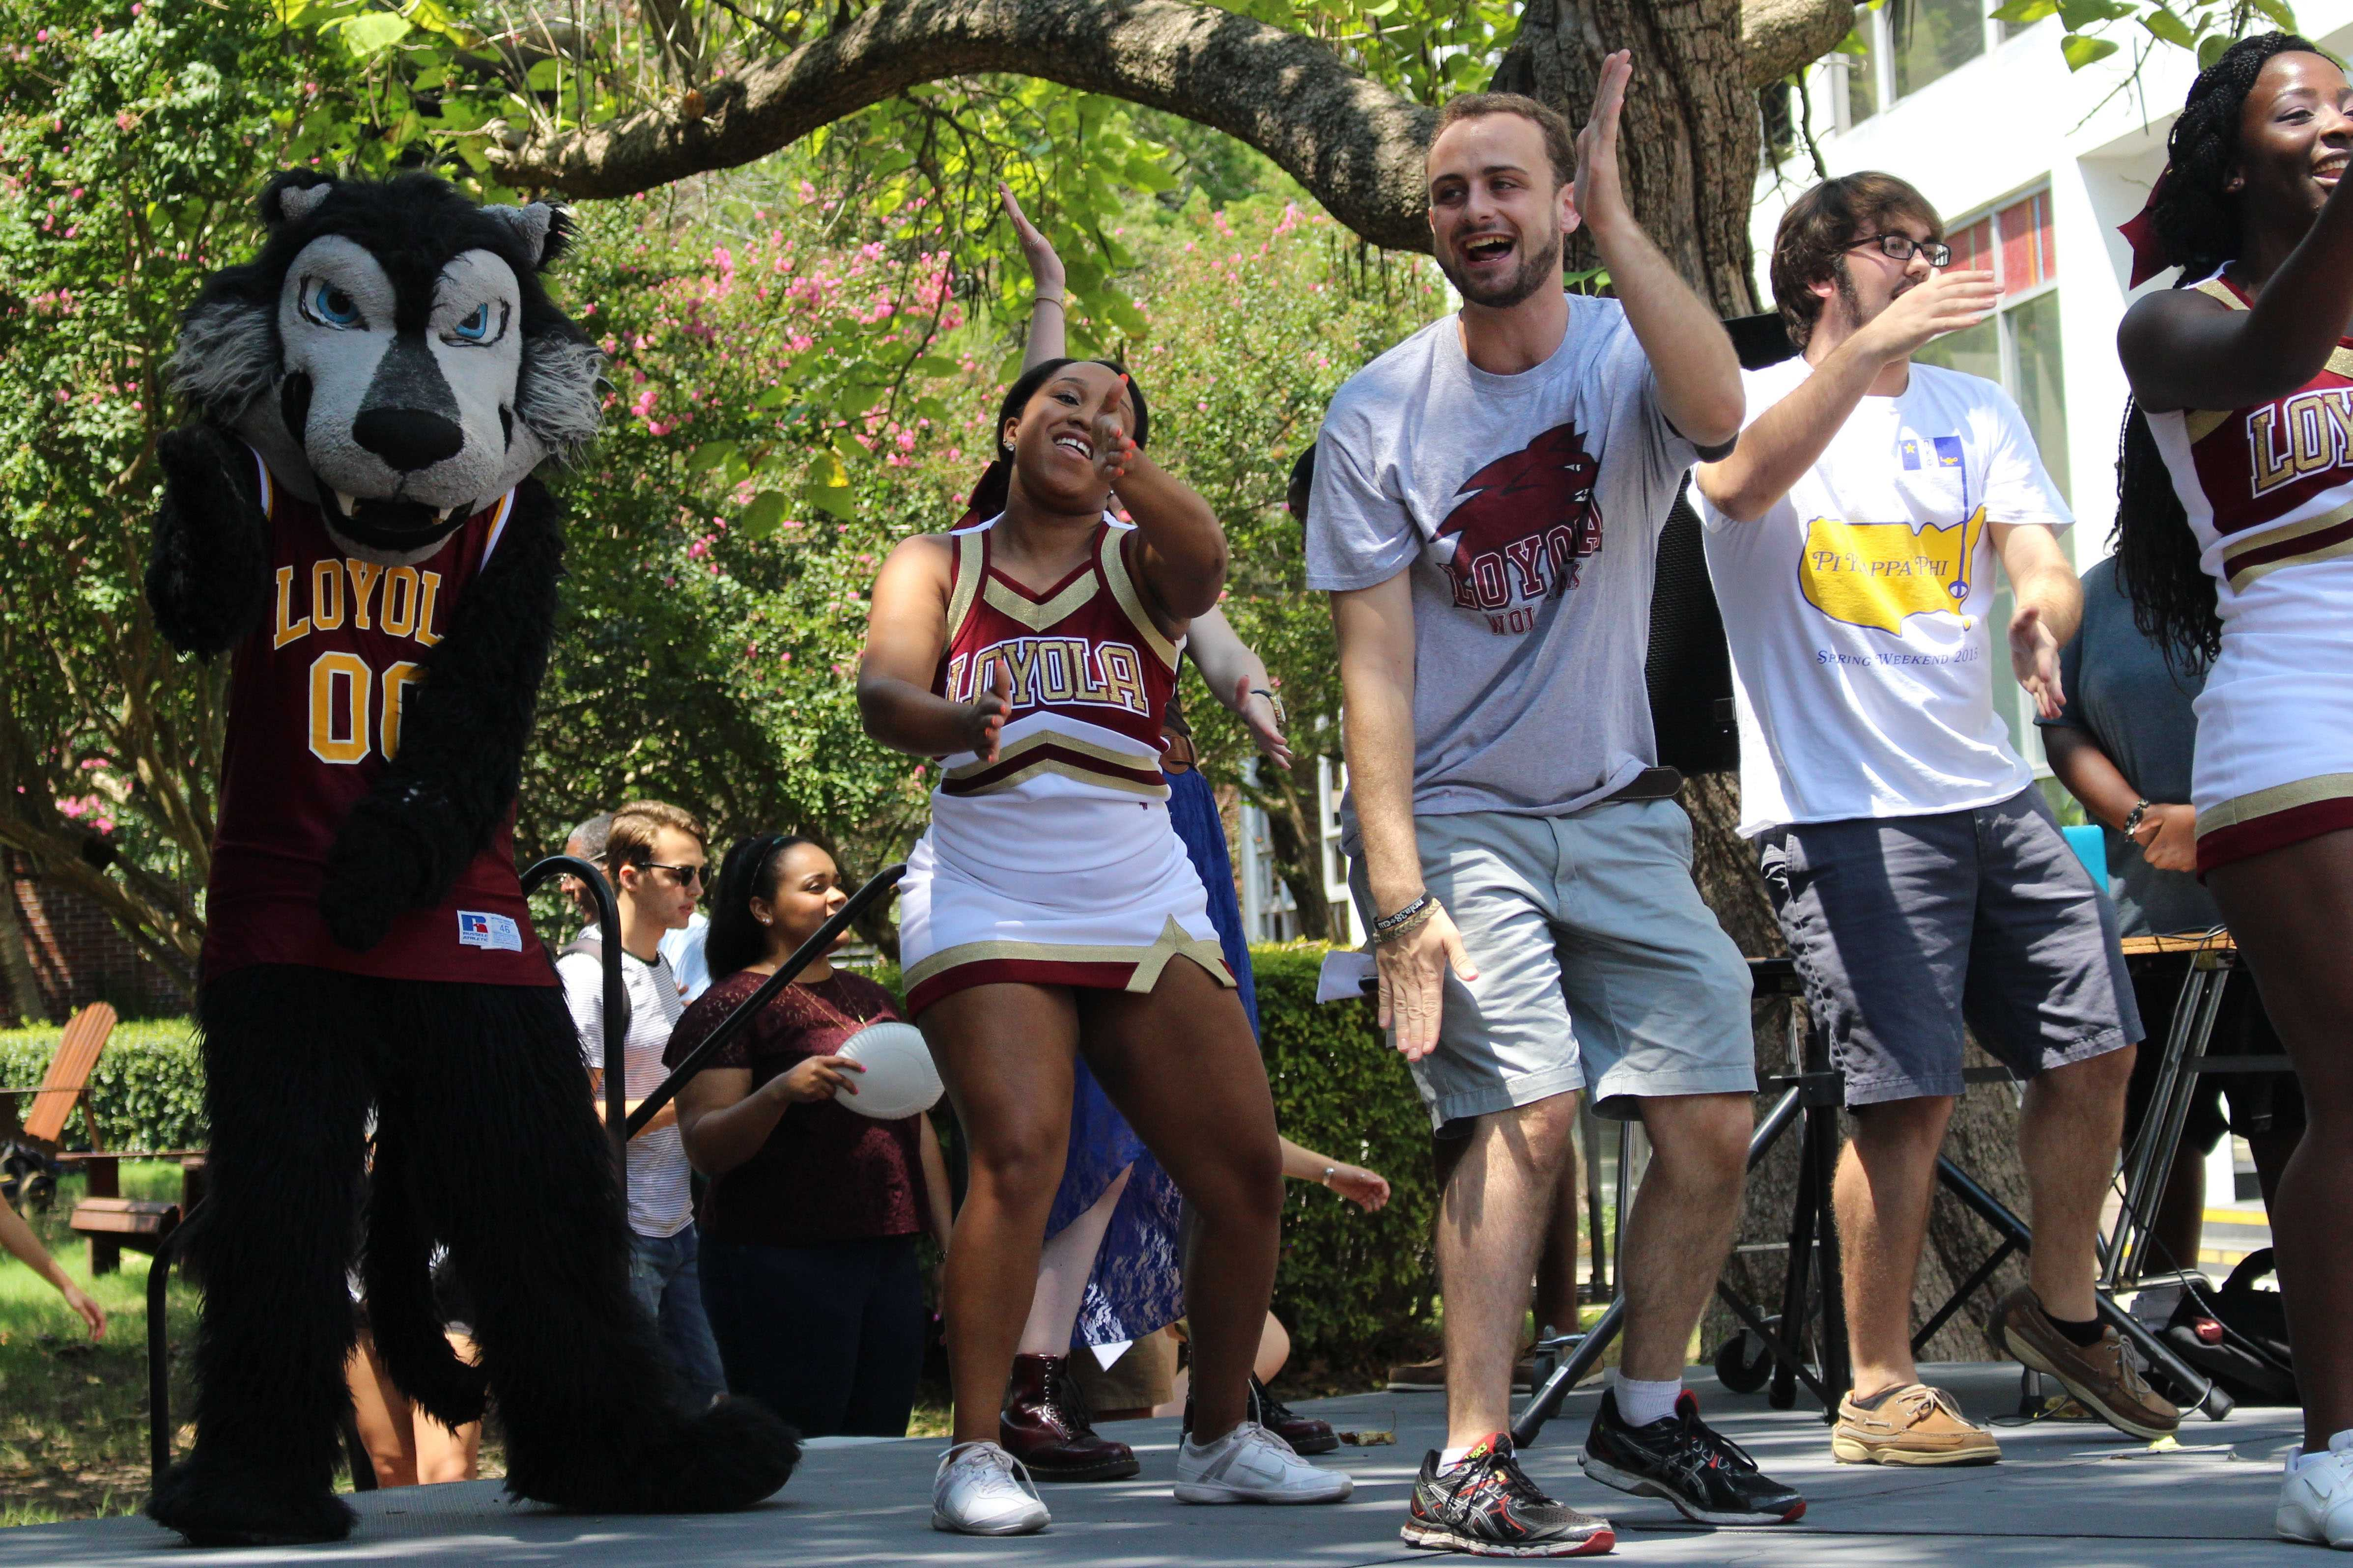 Loyola's mascot, Havoc, joined SGA president Nate Ryther, an economics senior, and other students in a dance at the Back to School Rally on Tuesday in the Peace Quad. The event featured complimentary food, music, dancing and a presentation of the school's newest athletes. Photo credit: Kristen Stewart